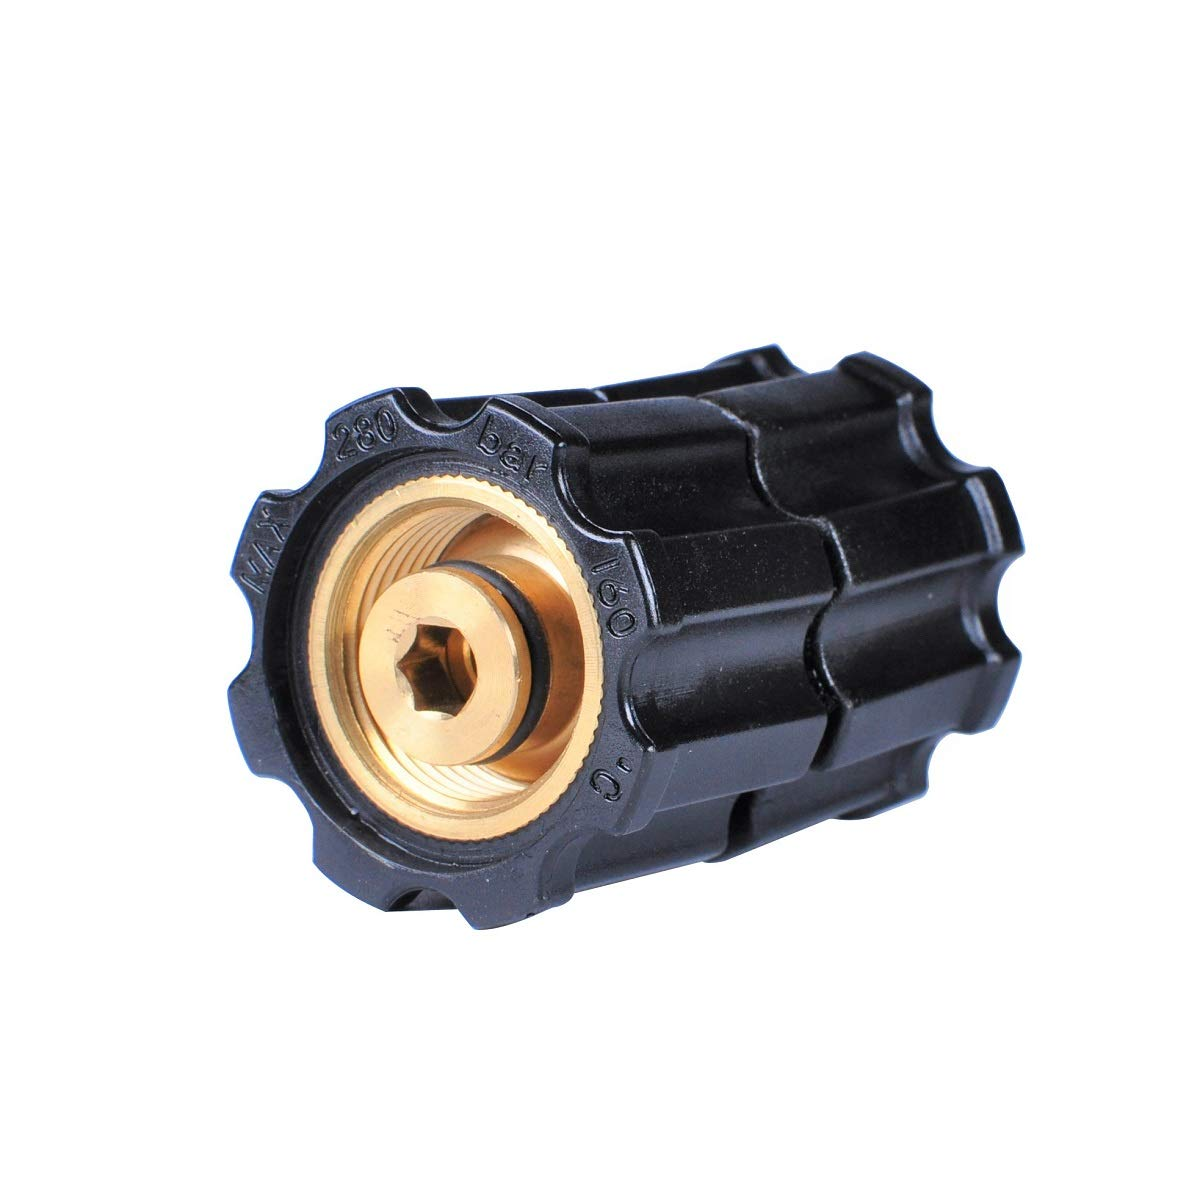 YAMATIC Upgraded High Pressure Washer Quick Connector Coupler, M22 14mm X M22 14mm Quick Disconnect Nipple Plug Up to 5000 PSI